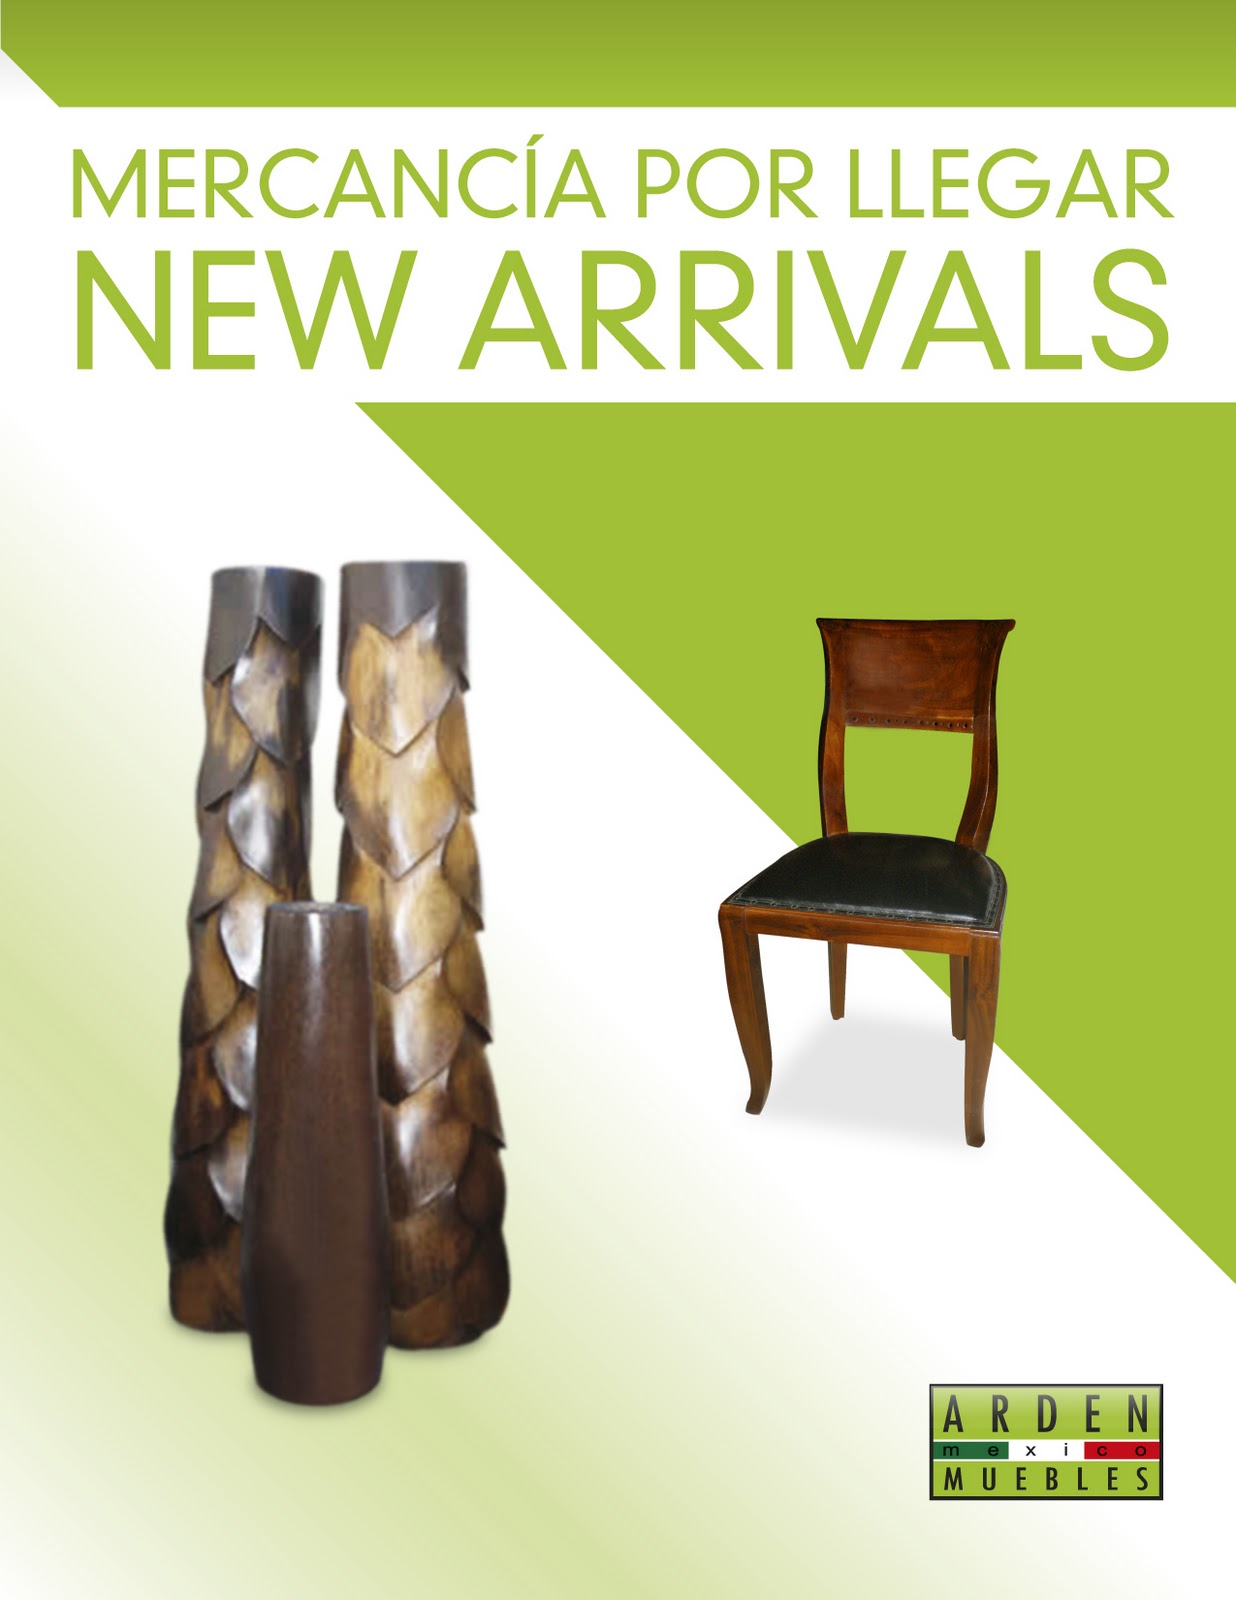 Arden casa de muebles new arrivals january 2011 for Muebles importados de china